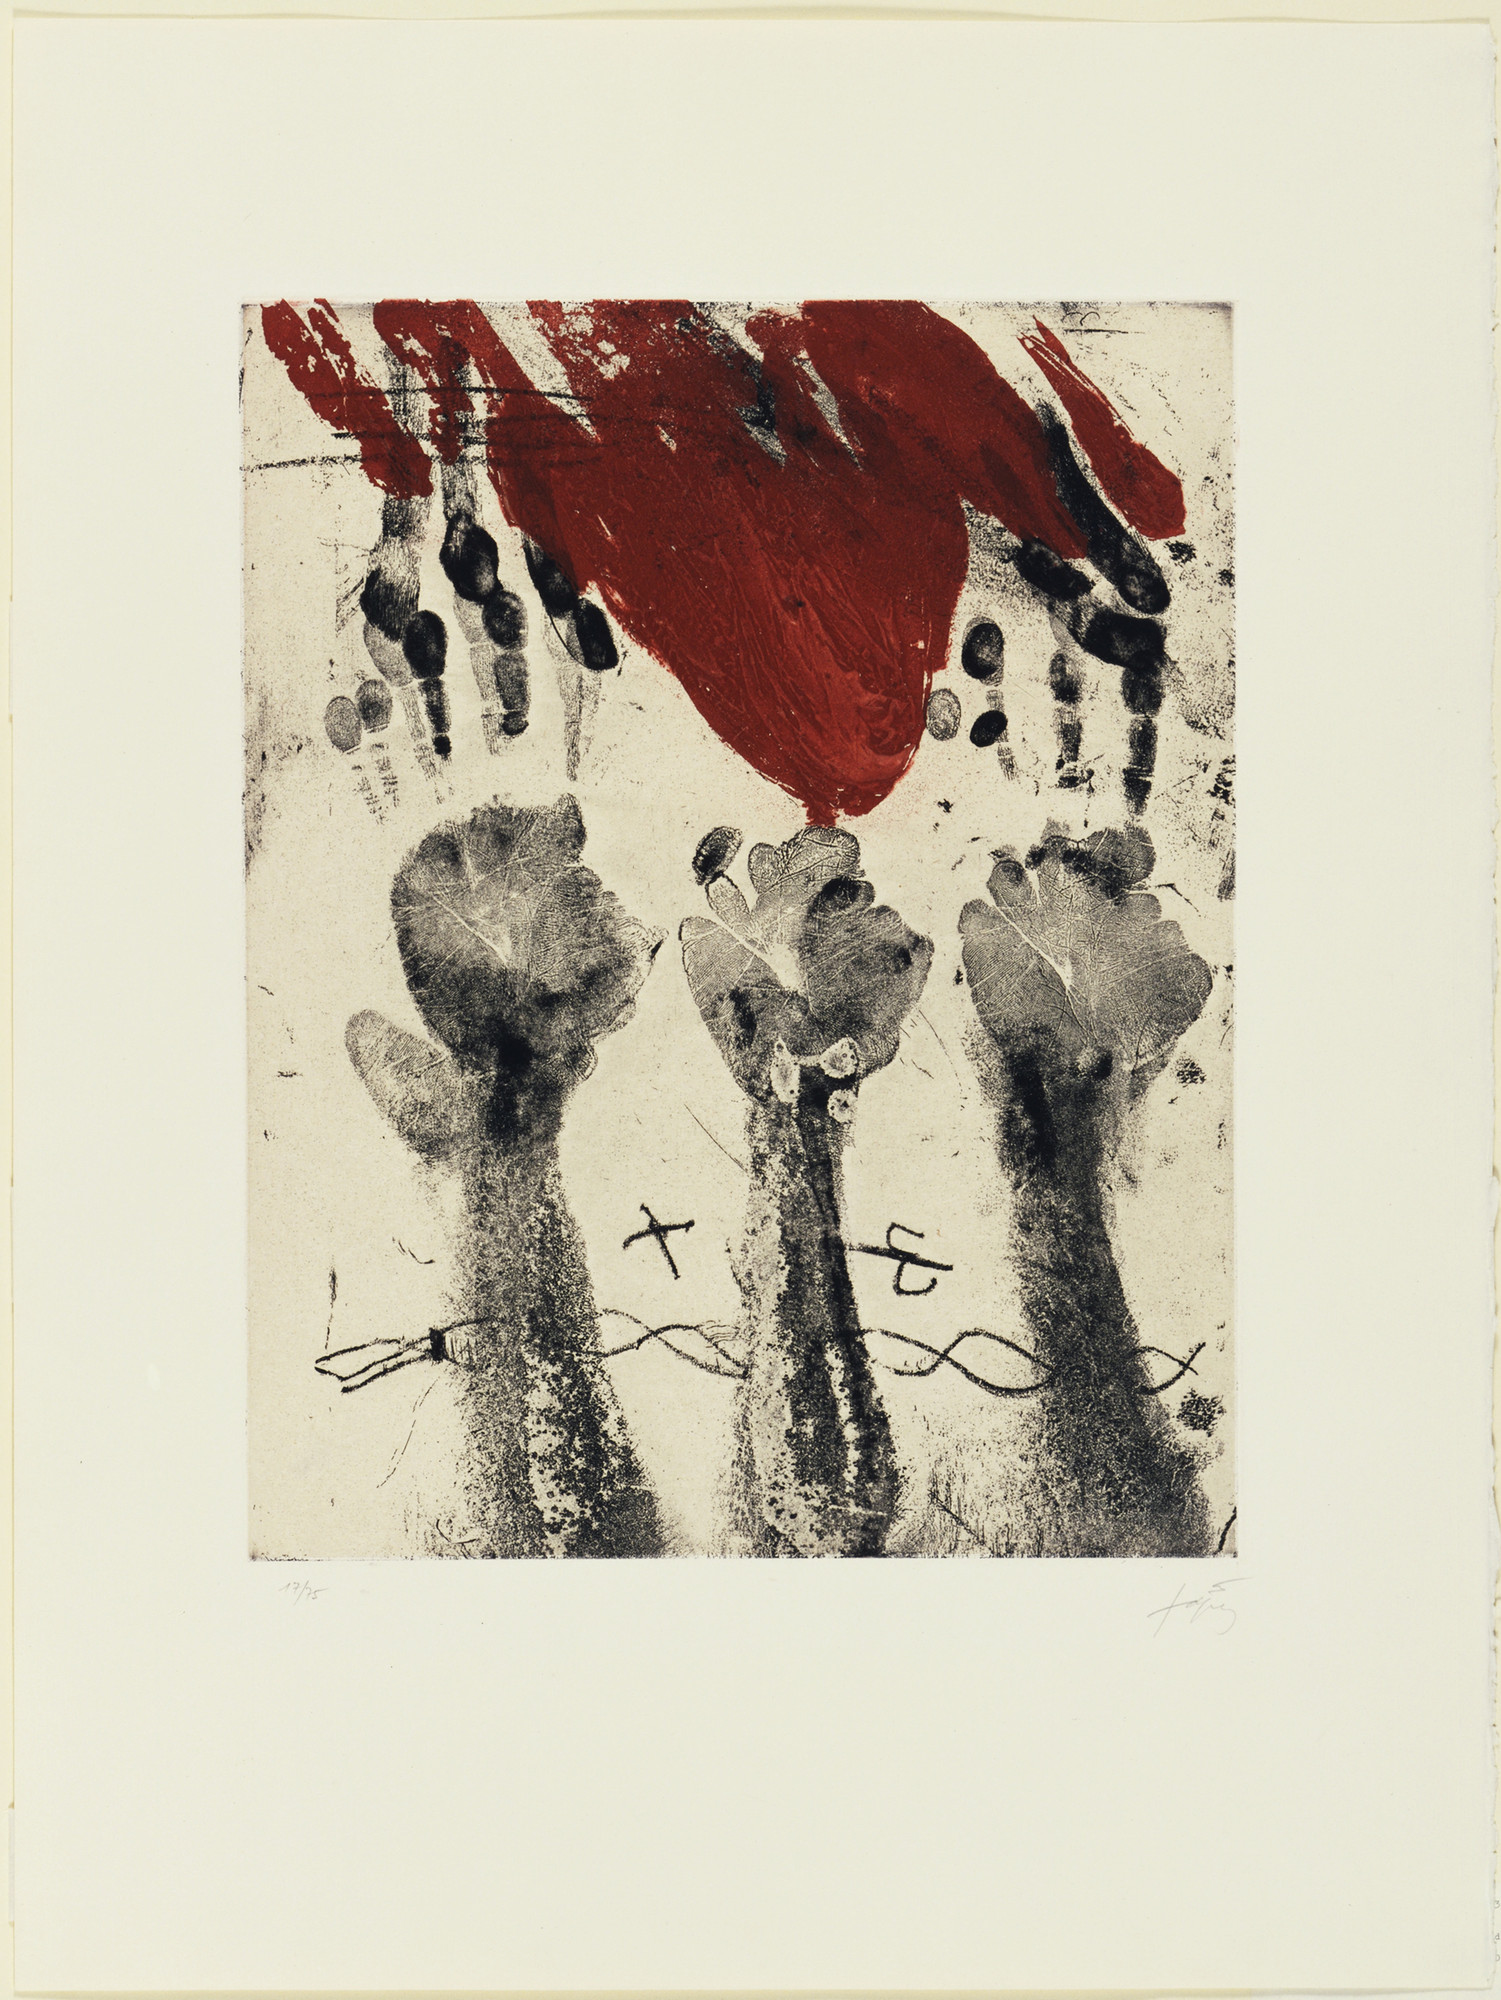 Antoni Tàpies. The Hands (Les Mains). 1969. Etching and aquatint, plate: 19 9/16 × 15 1/2″ (49.7 × 39.4cm); sheet: 30 1/2 × 23 1/8″ (77.5 × 58.7cm). Donald Karshan Fund. © 2016 Artists Rights Society (ARS), New York / ADAGP, Paris